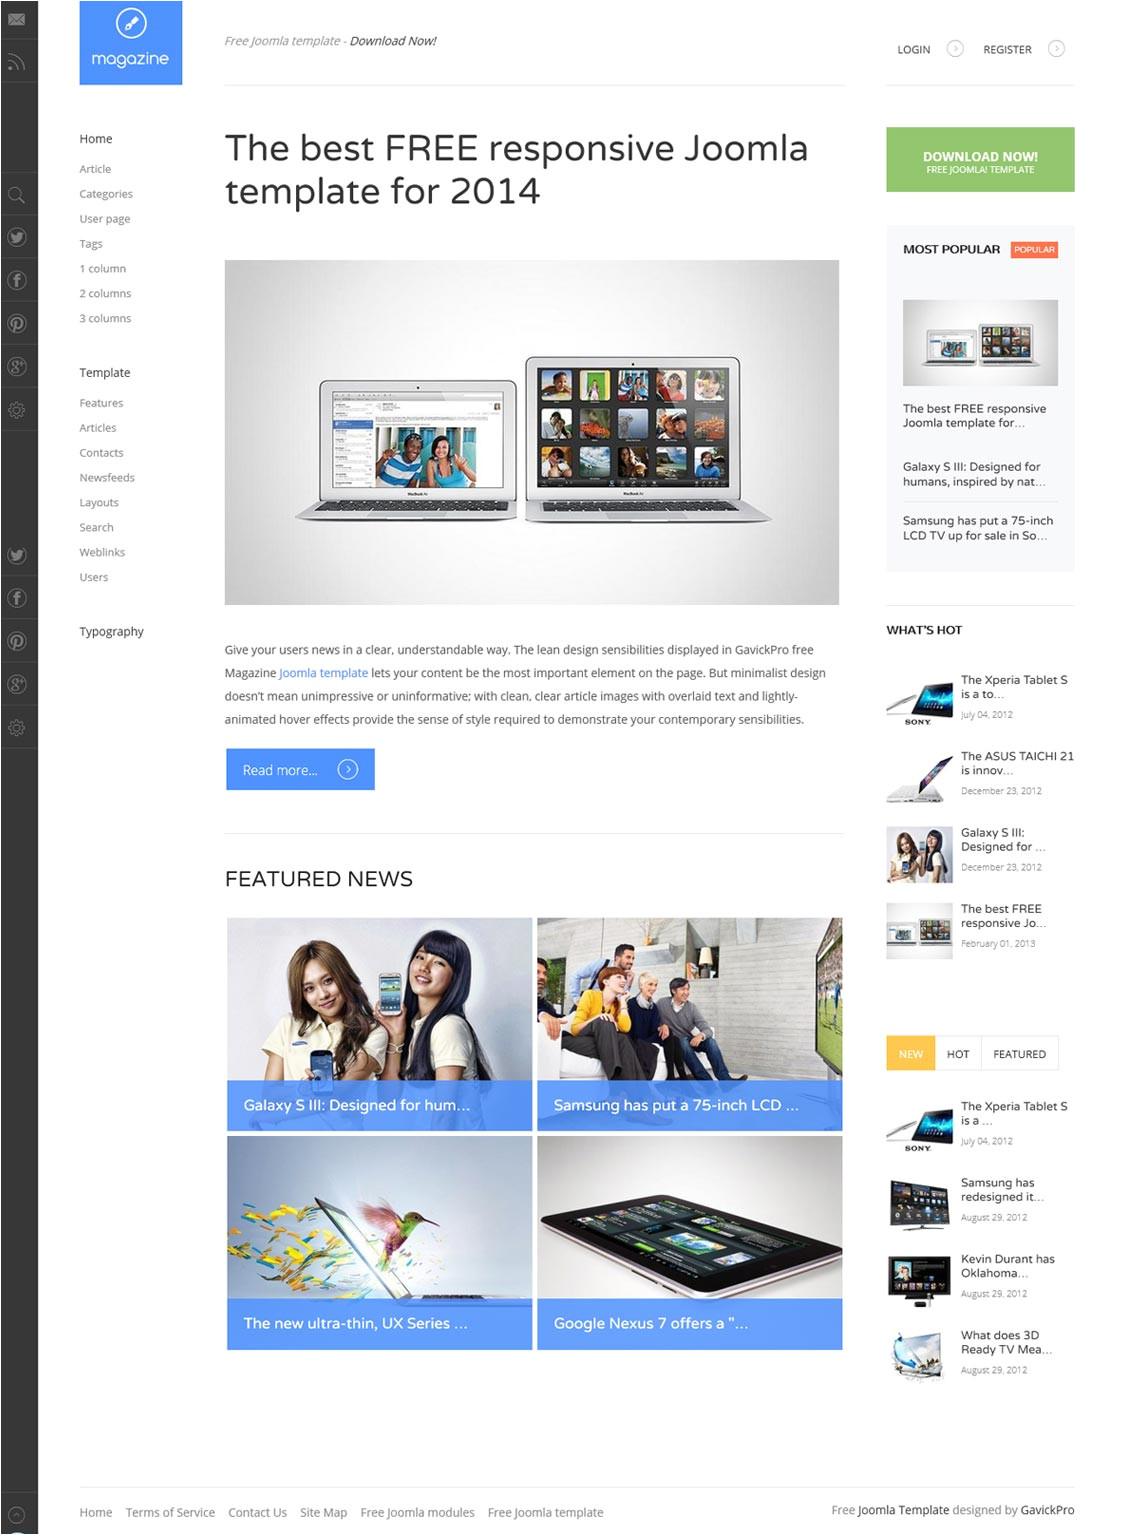 12 beautiful joomla 3 2 responsive templates free to use for websites